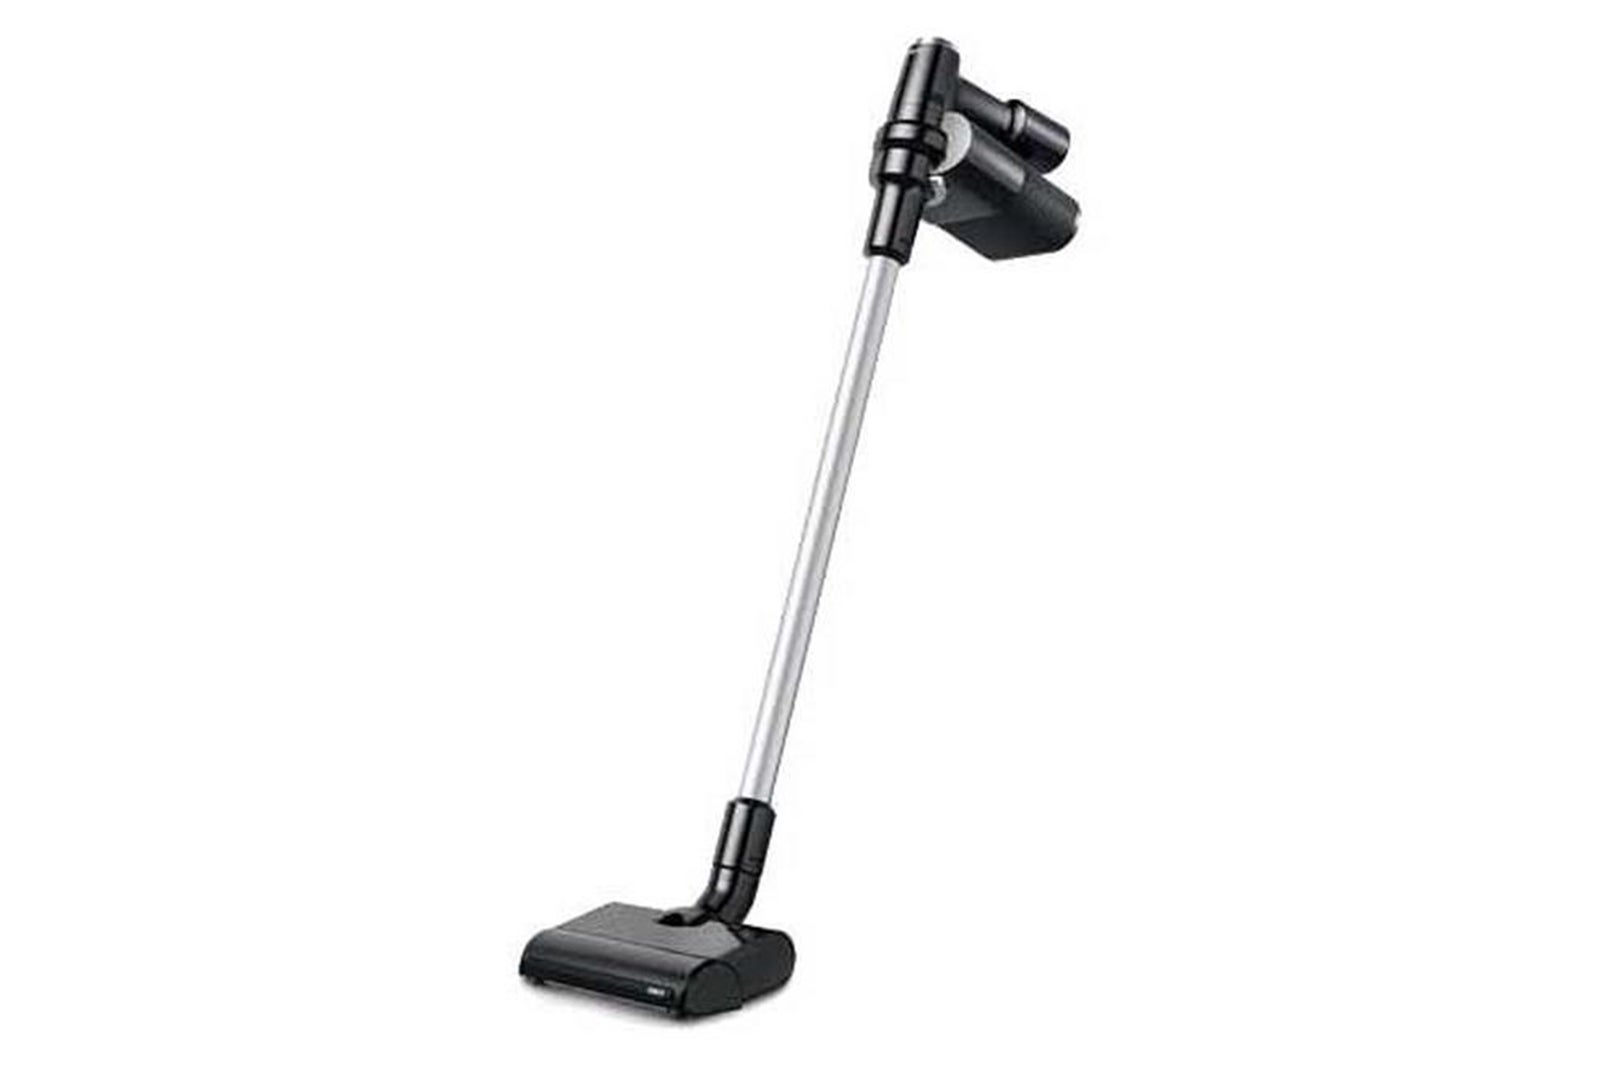 Oreck Cordless Vacuum With Pod Technology Review This